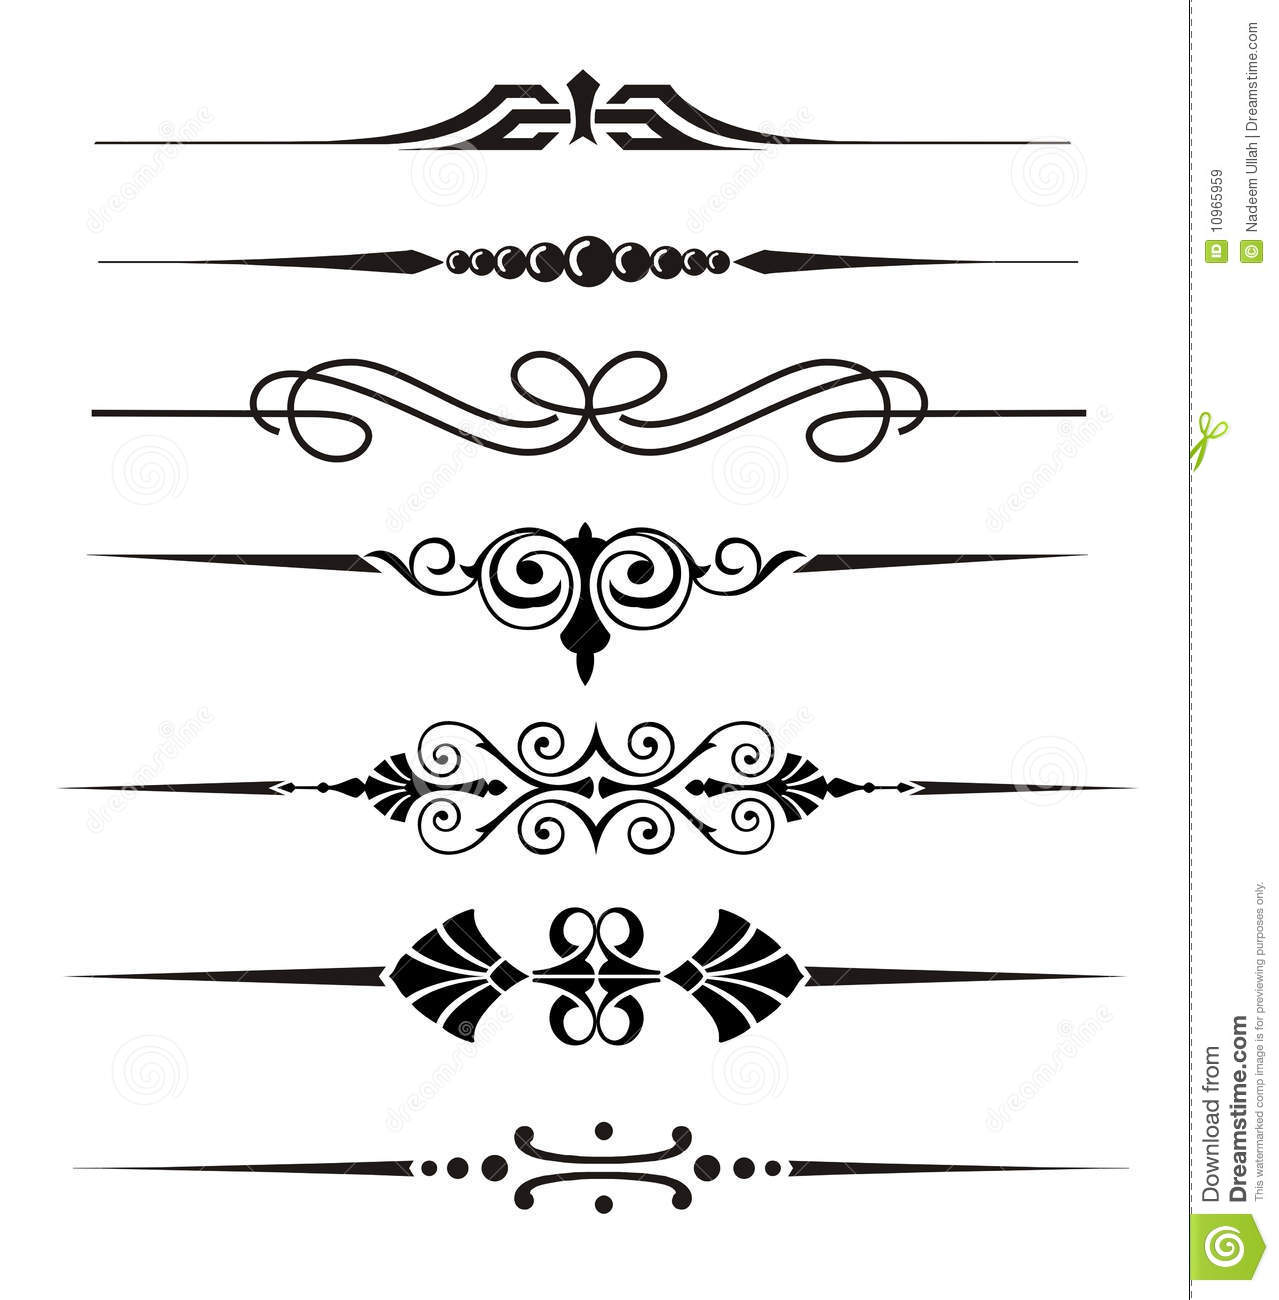 vector elements royalty free stock images image 10965959 clip art shapes free download clip art shapes free download